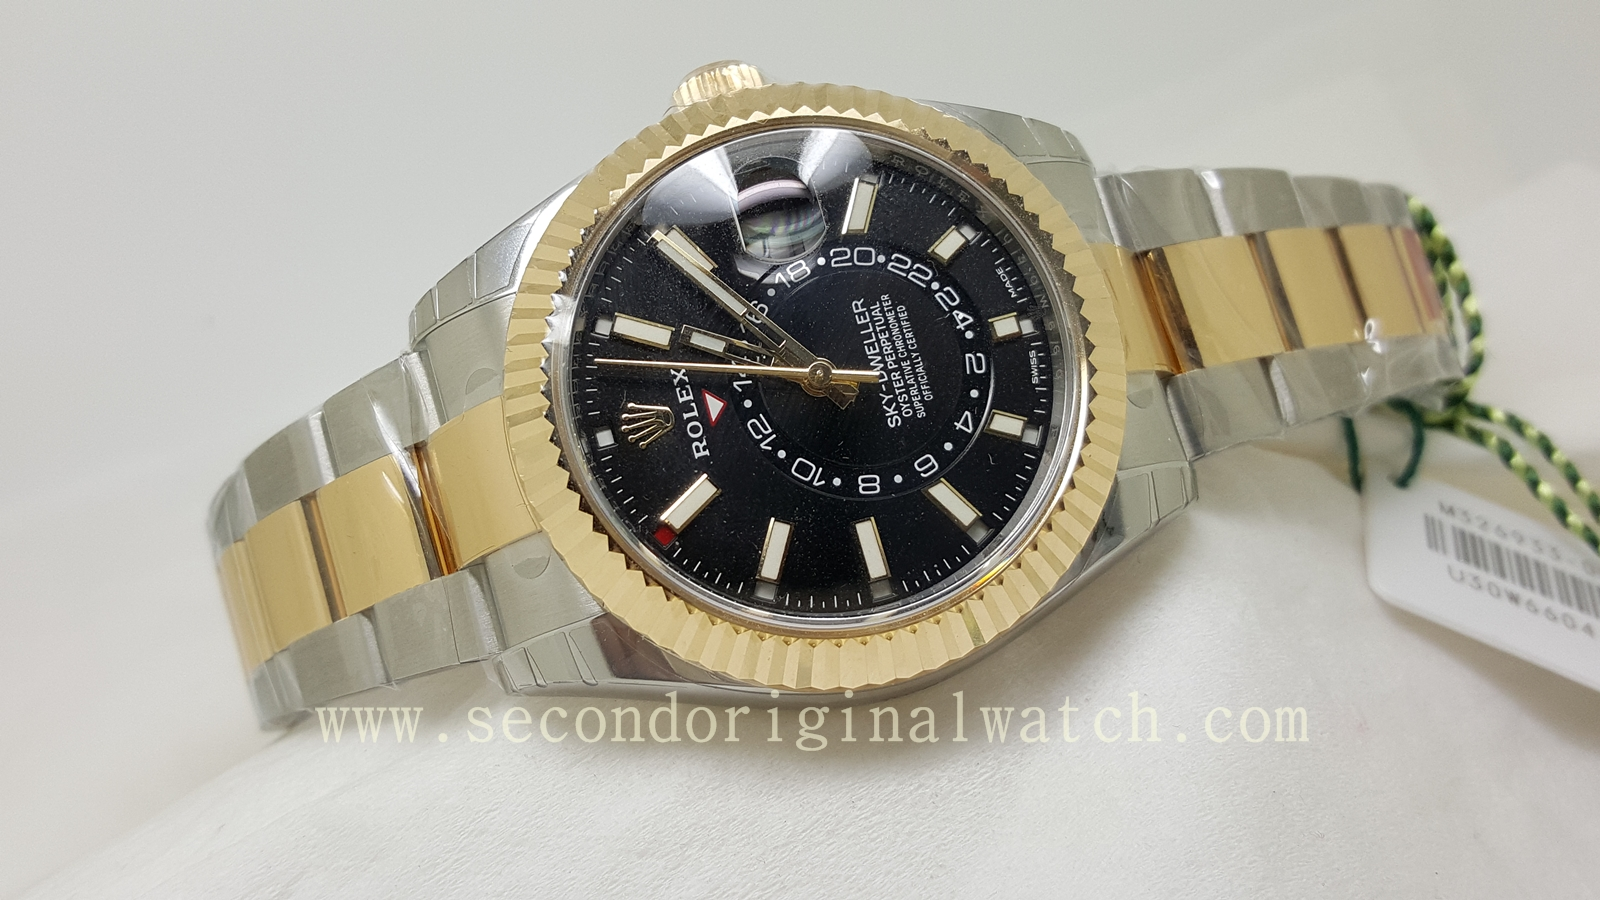 Jual Jam Rolex Gold Original Welcome To Tangan Pria Expedition 6631 Black Yellow Triple Time Case Steel With Bezel Dial Movement Automatic Strap Deployment Buckle Size 42mm